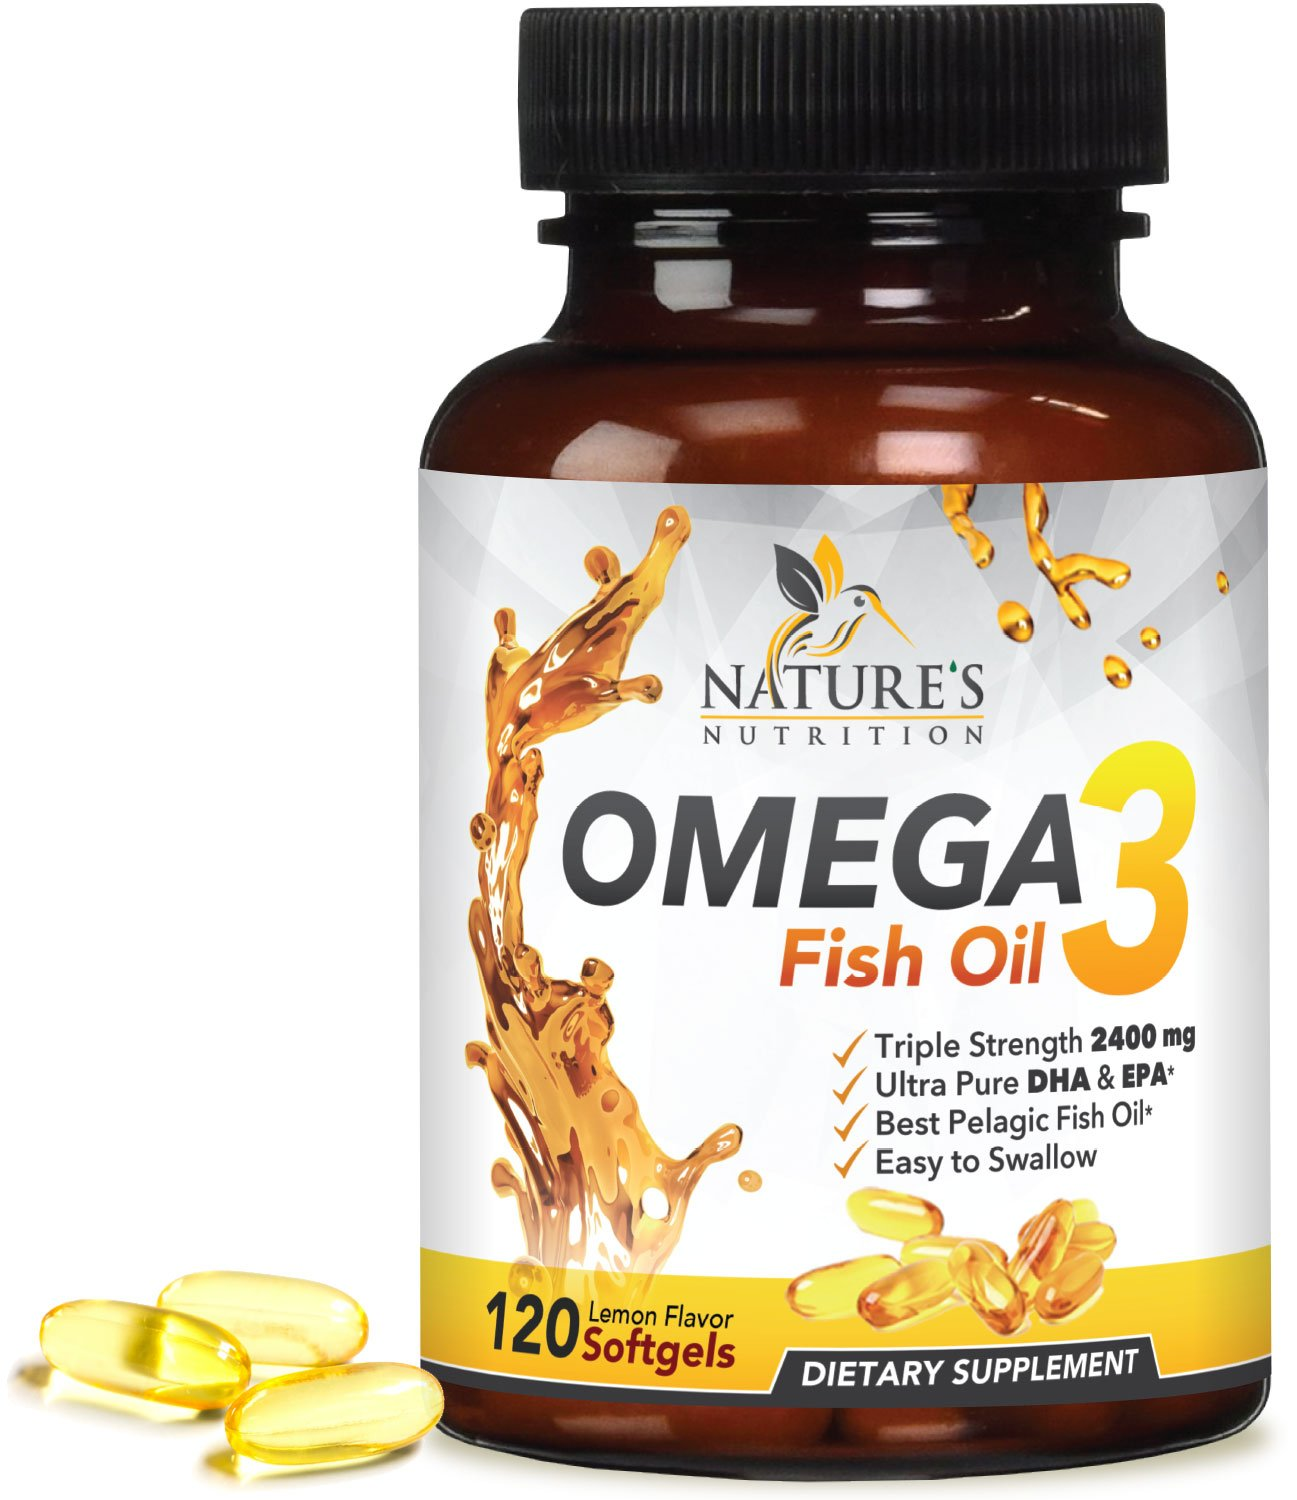 Omega 3 Fish Oil Concentrated Triple Strength 2400mg - EPA & DHA Fatty Acids Capsules, Non-GMO, GMP Certified, Best Fish Oil Supplement by Nature's Nutrition, Lemon Flavor - 120 Softgels